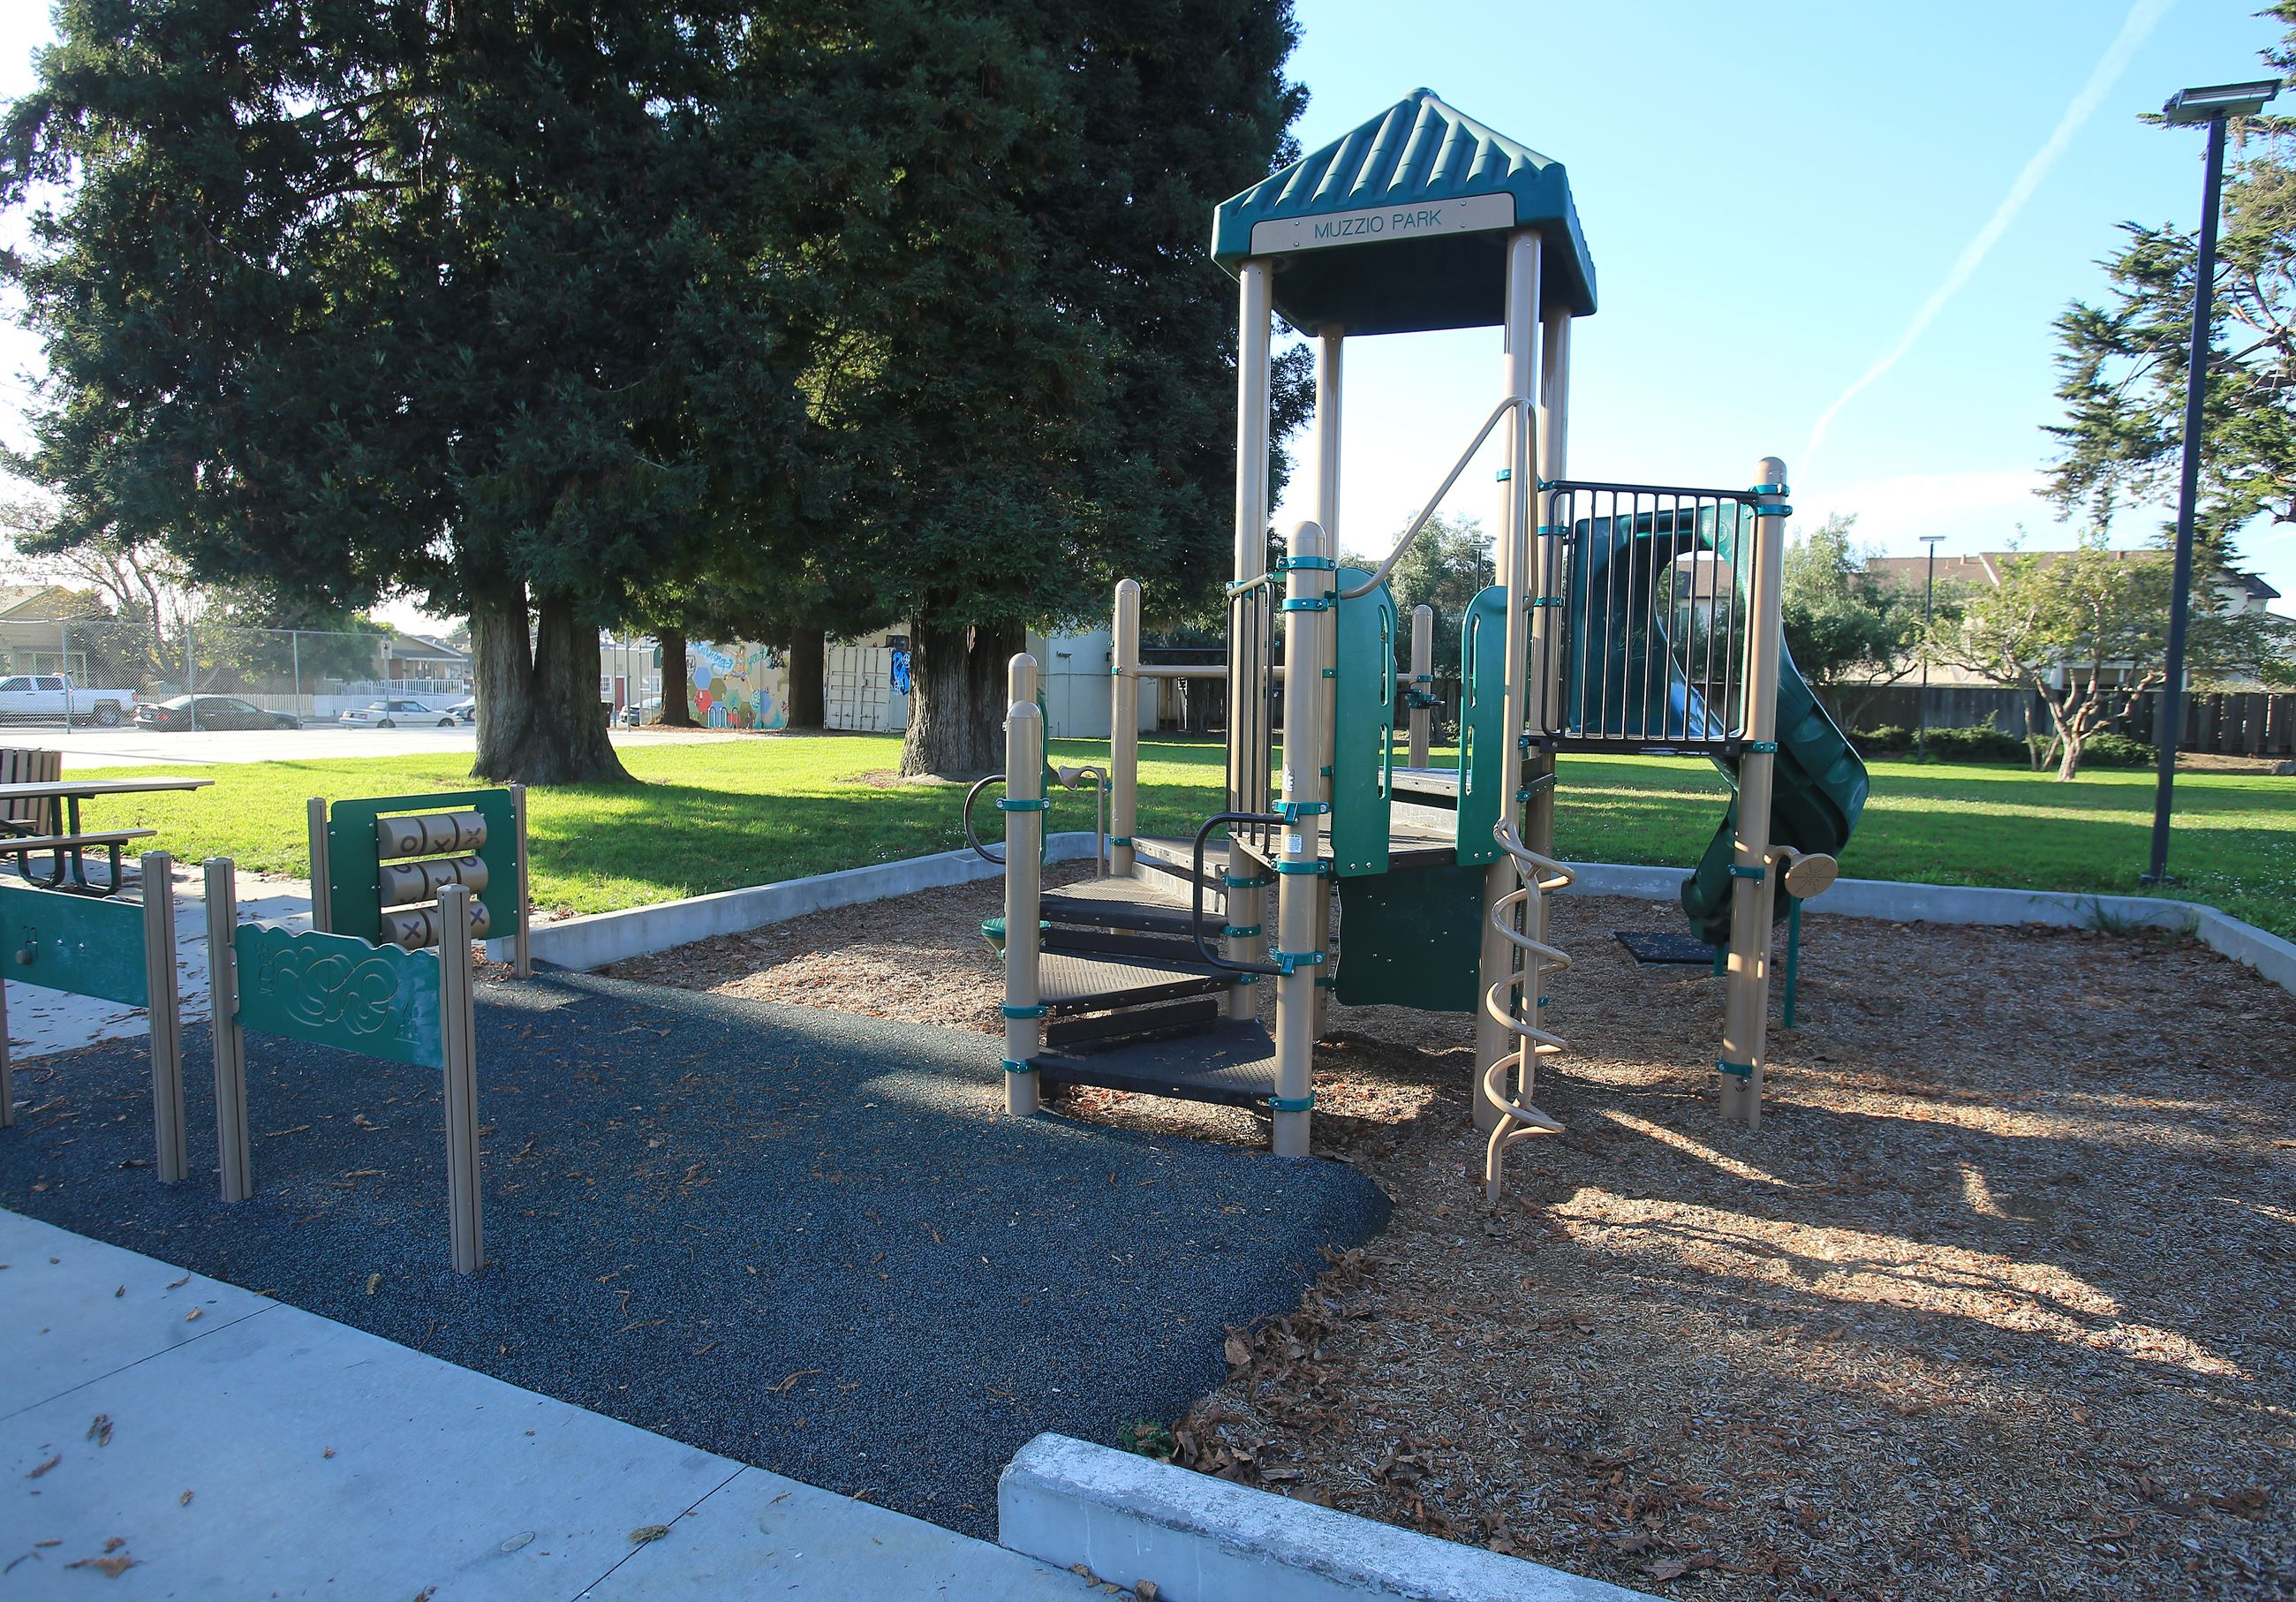 Playground structure at Muzzio park